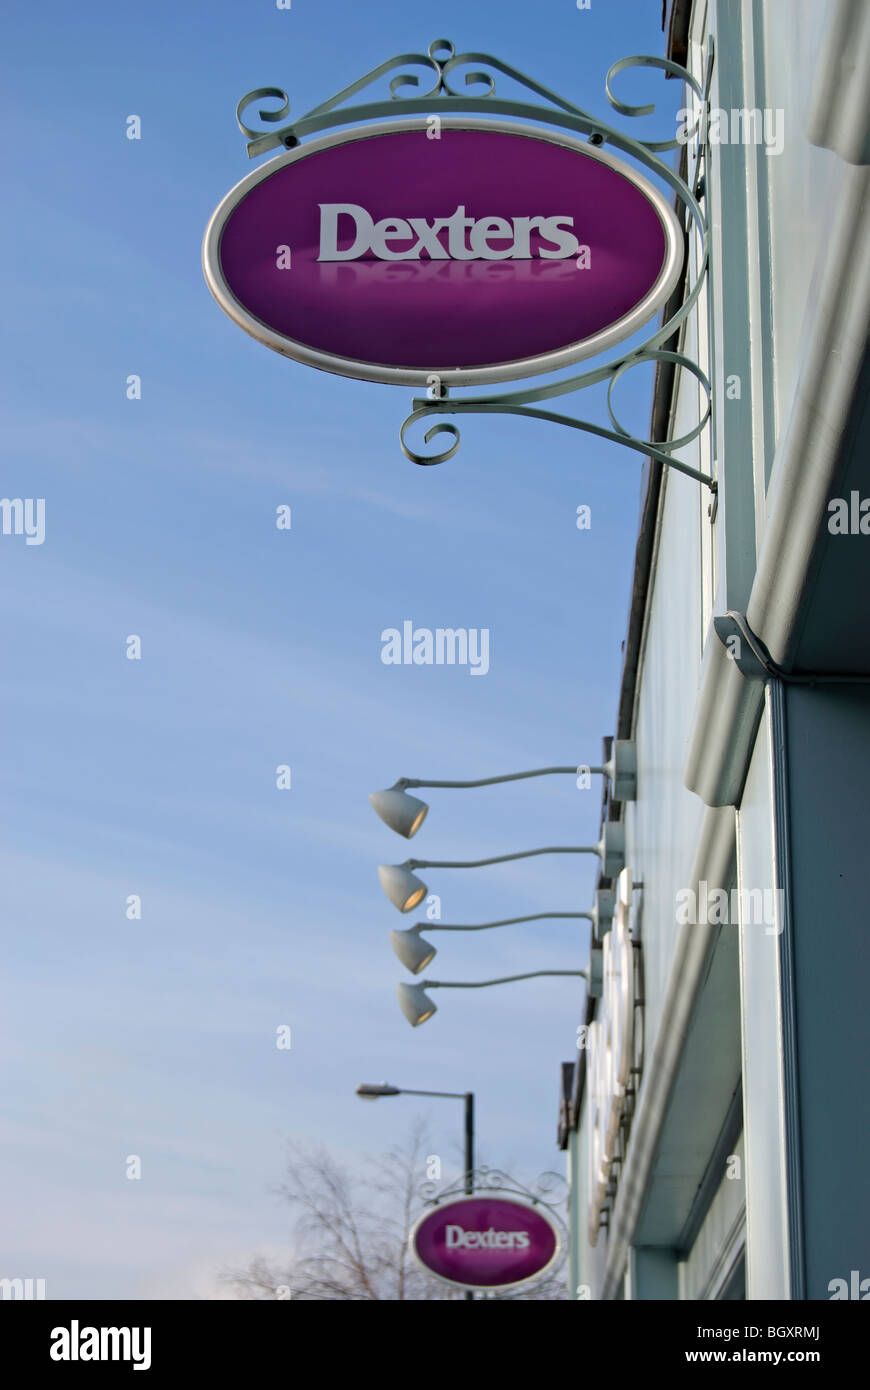 sign for dexters estate agents, teddington,  middlesex, england - Stock Image